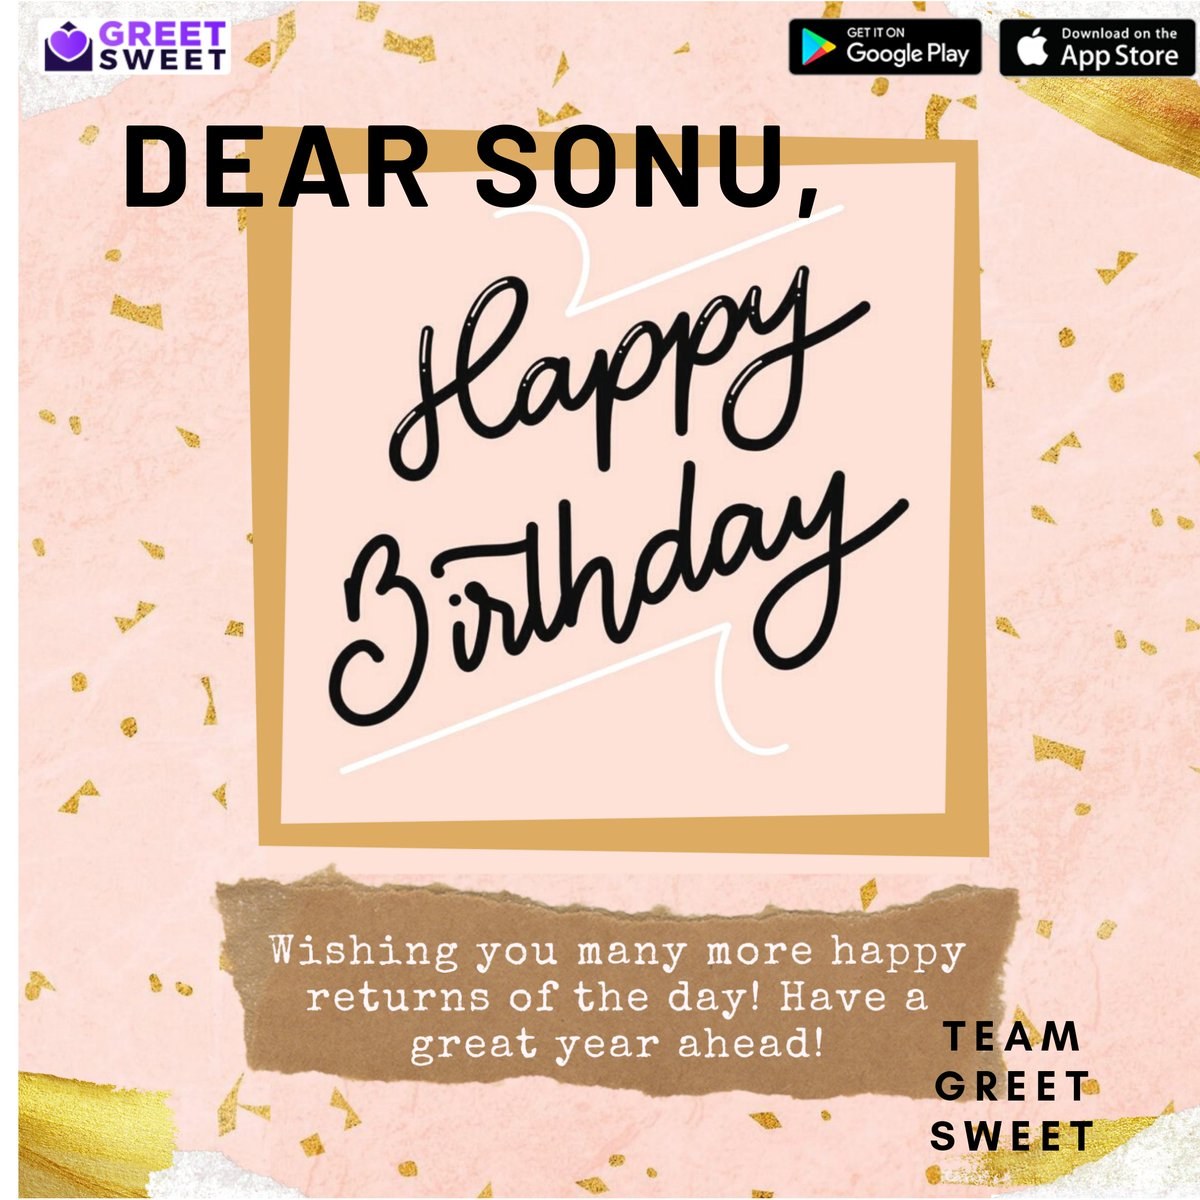 Happy Birthday to the Nightingale @SonuKakkar . Have a year filled with songs and success!! #sonukakkar #birthday #Singer  Create your greetings via @GreetSweetApp app.pic.twitter.com/bIFtuIiY5c